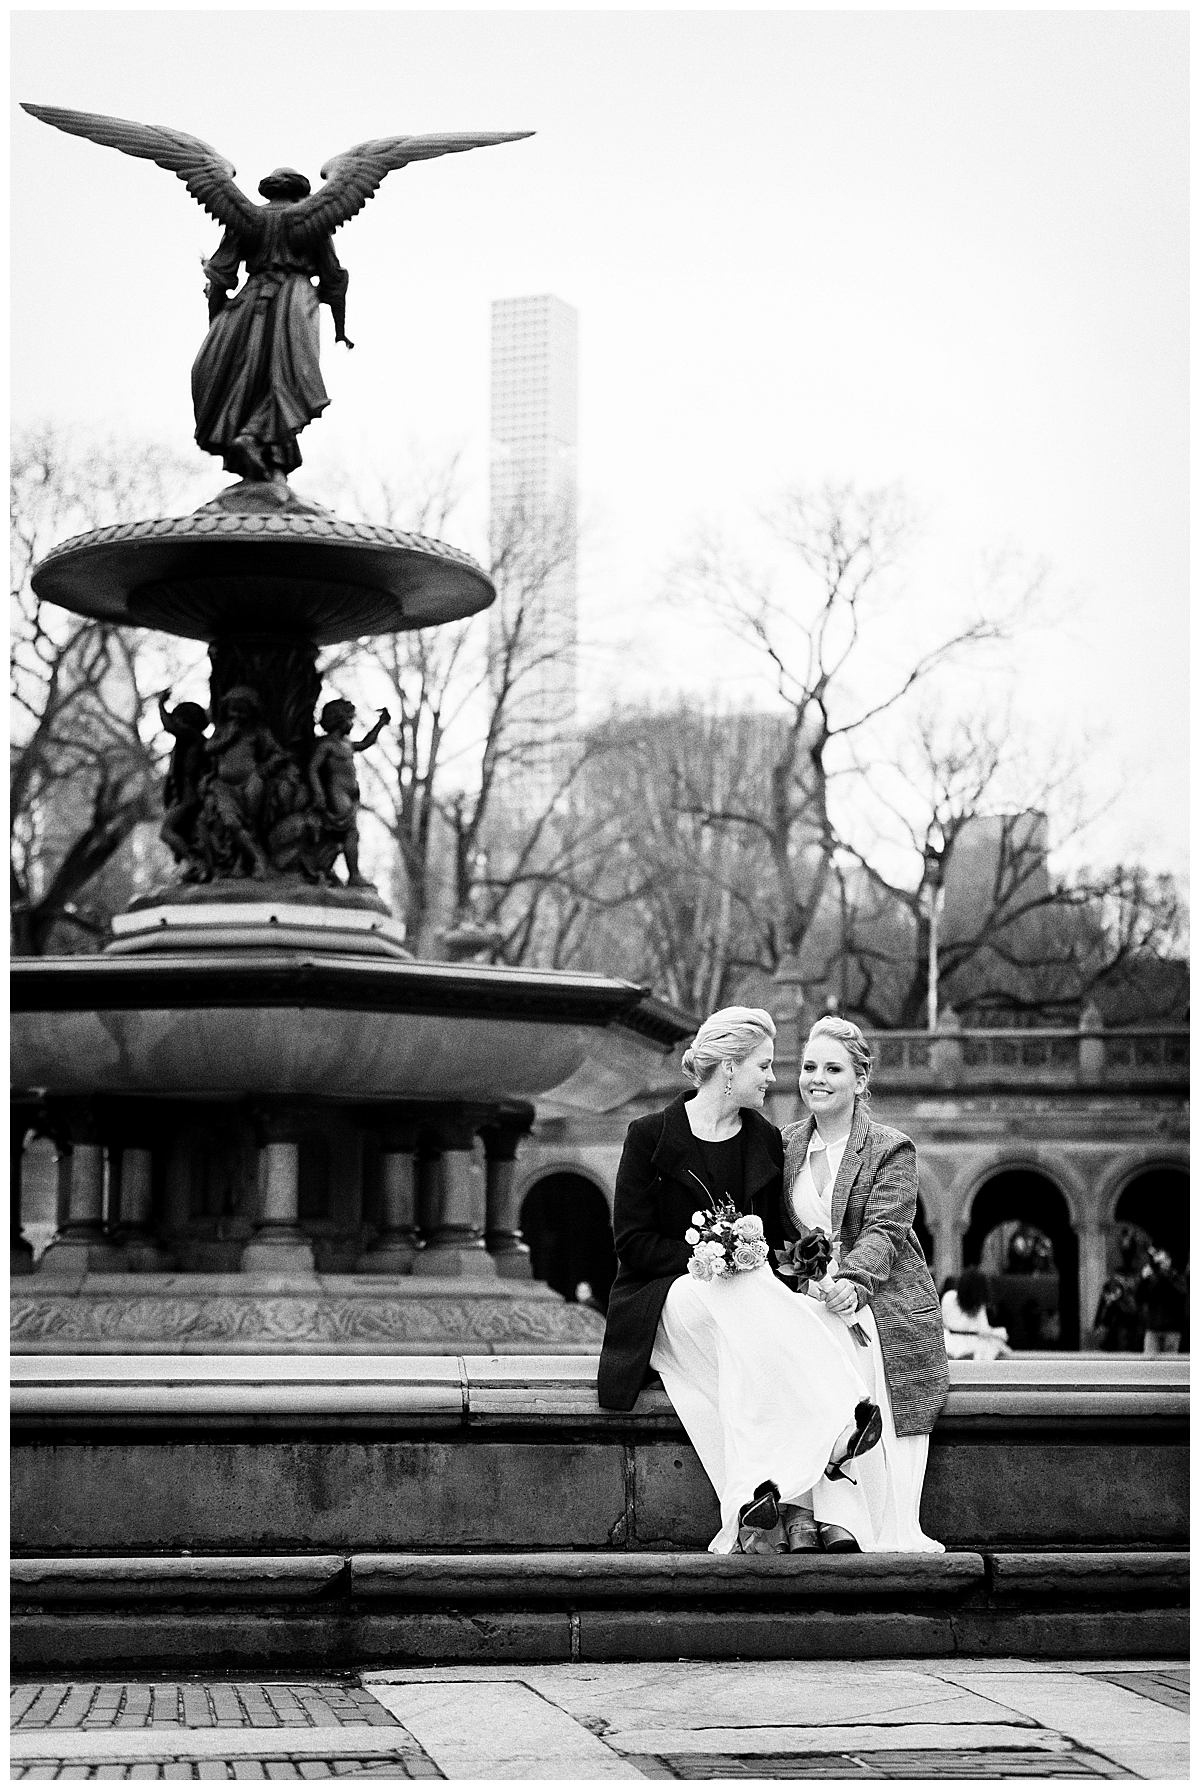 kristy-may-photography-nyc-wedding-photographer-35